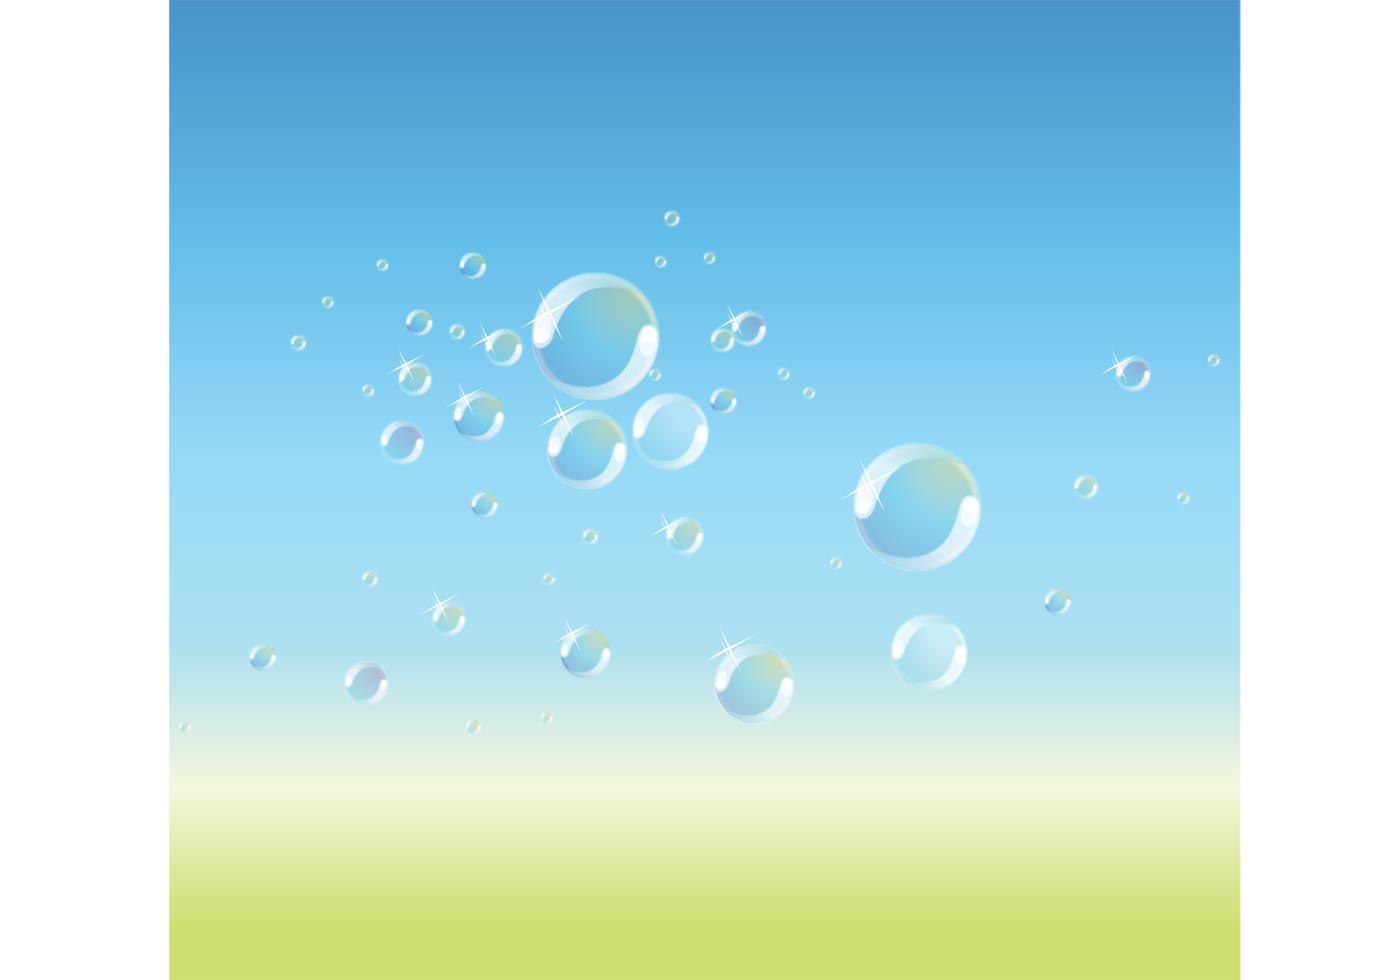 Bubbles download free vector art stock graphics images for Clipart to download for free